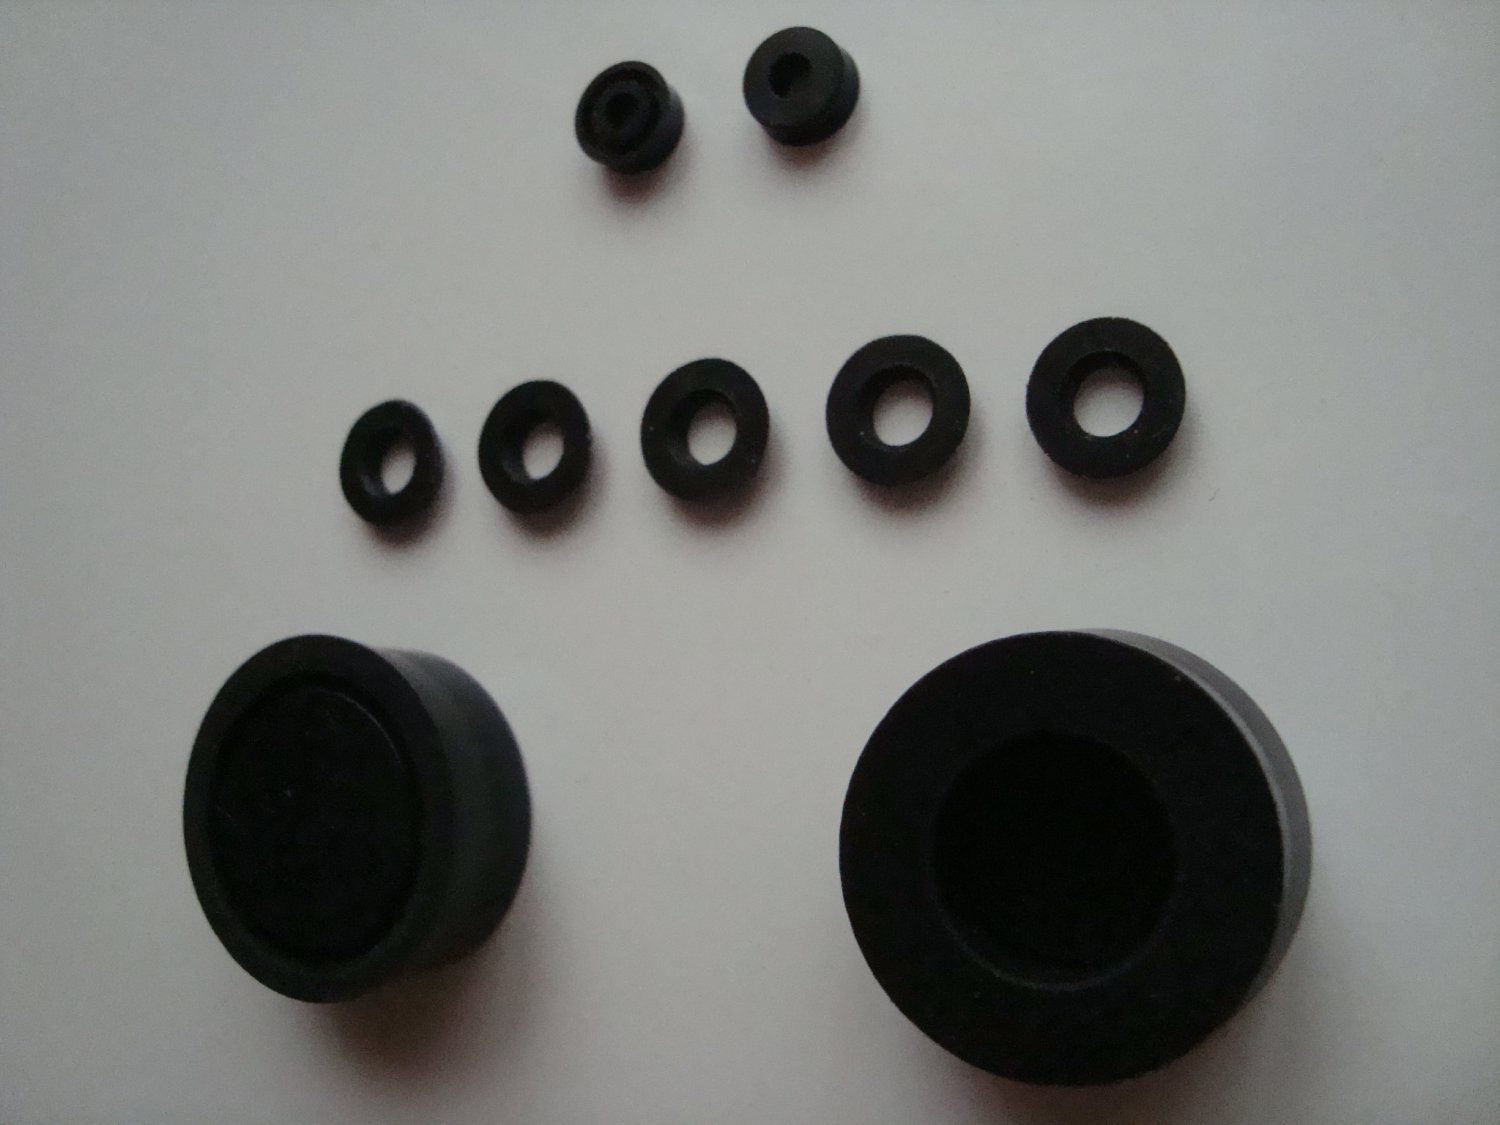 MP-46M, MP-46, IZH-46 sealing o-rings, seals parts for tuning Baikal, repair kit from durable rubber